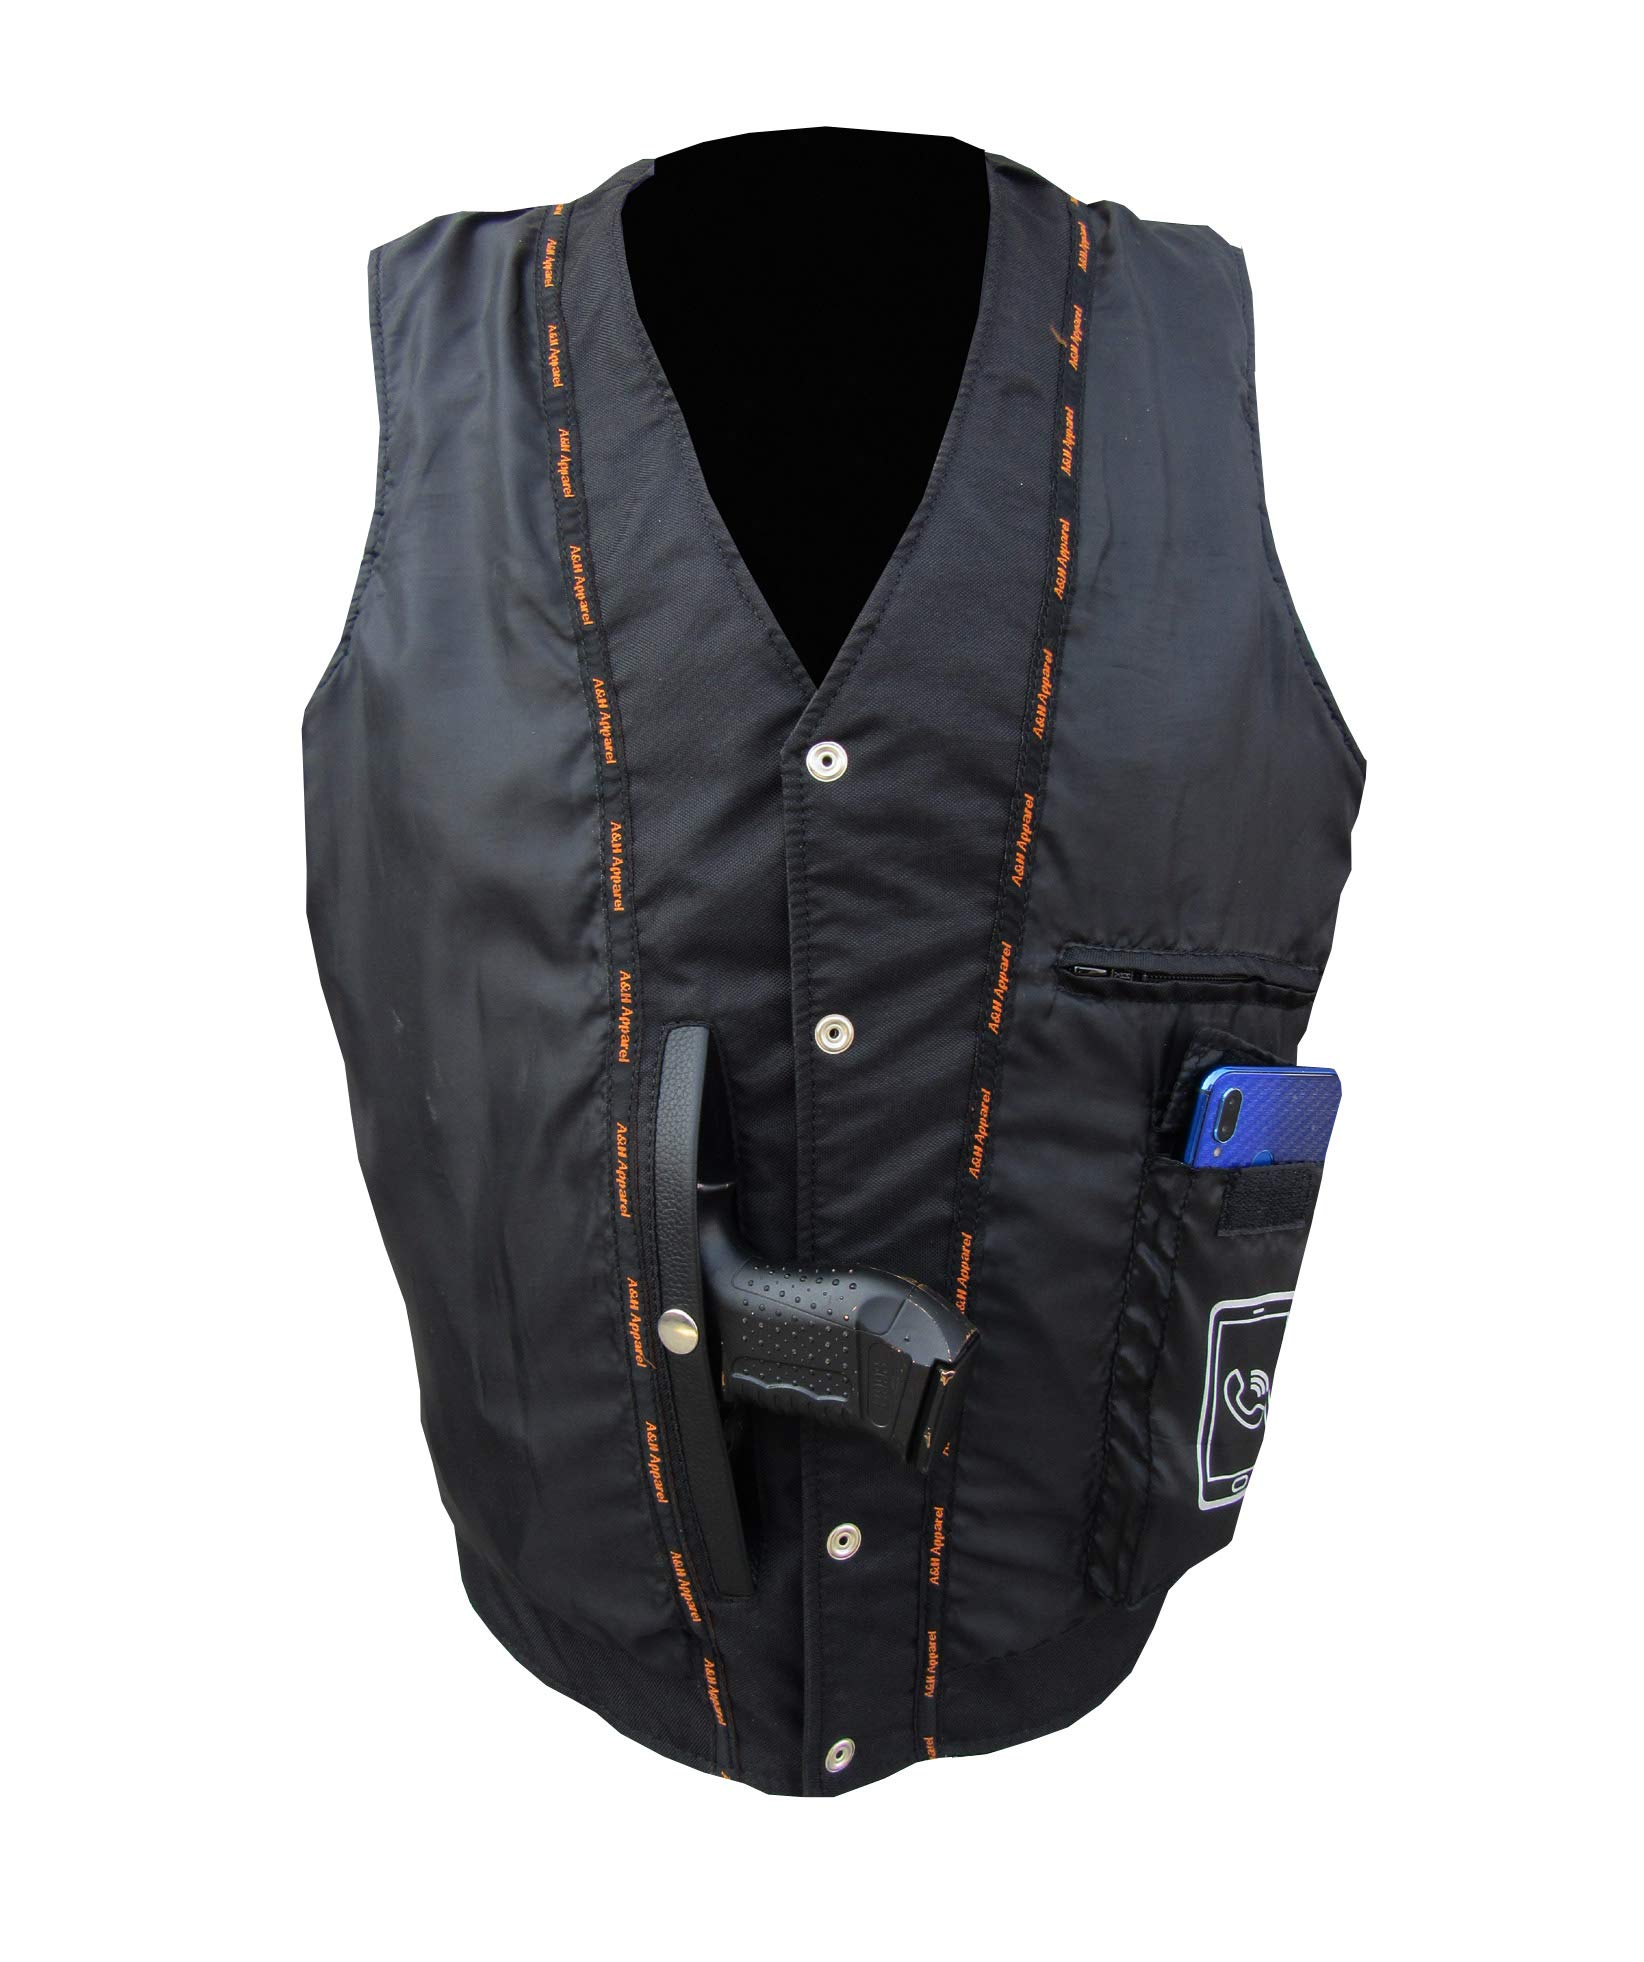 A&H Apparel Mens Motorcycle Genuine Cowhide Leather Biker Concealed Carry Durable Vest (X-Large)